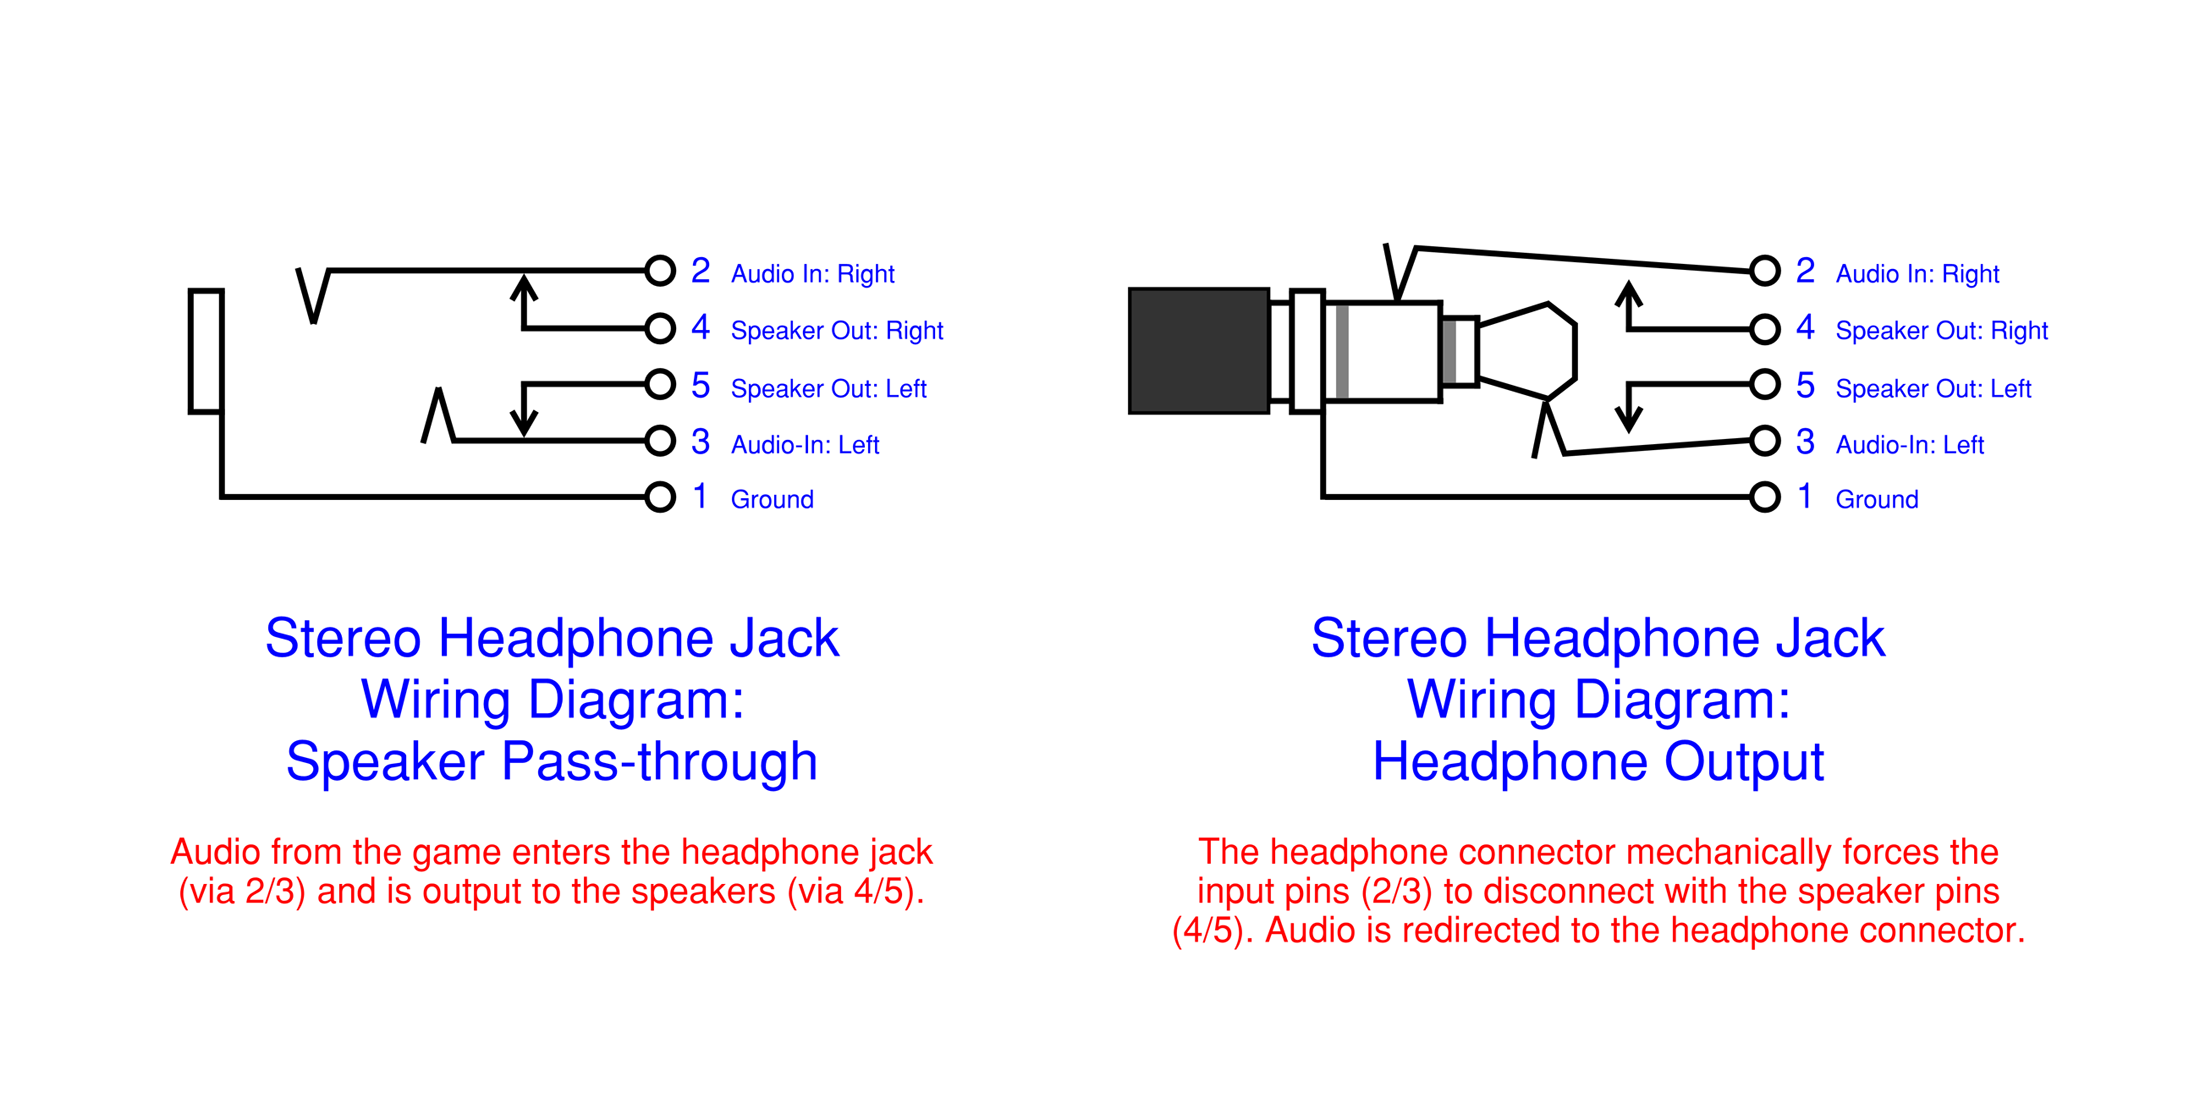 Oregon Trail Handheld Mod The Oregonboy Wr Labs Wiring Diagram For Headphones When Theyre Wired Inline With A Speaker Inserting Removing Headphone Plug Will Physically Disconnect Reconnect And Thus External Audio